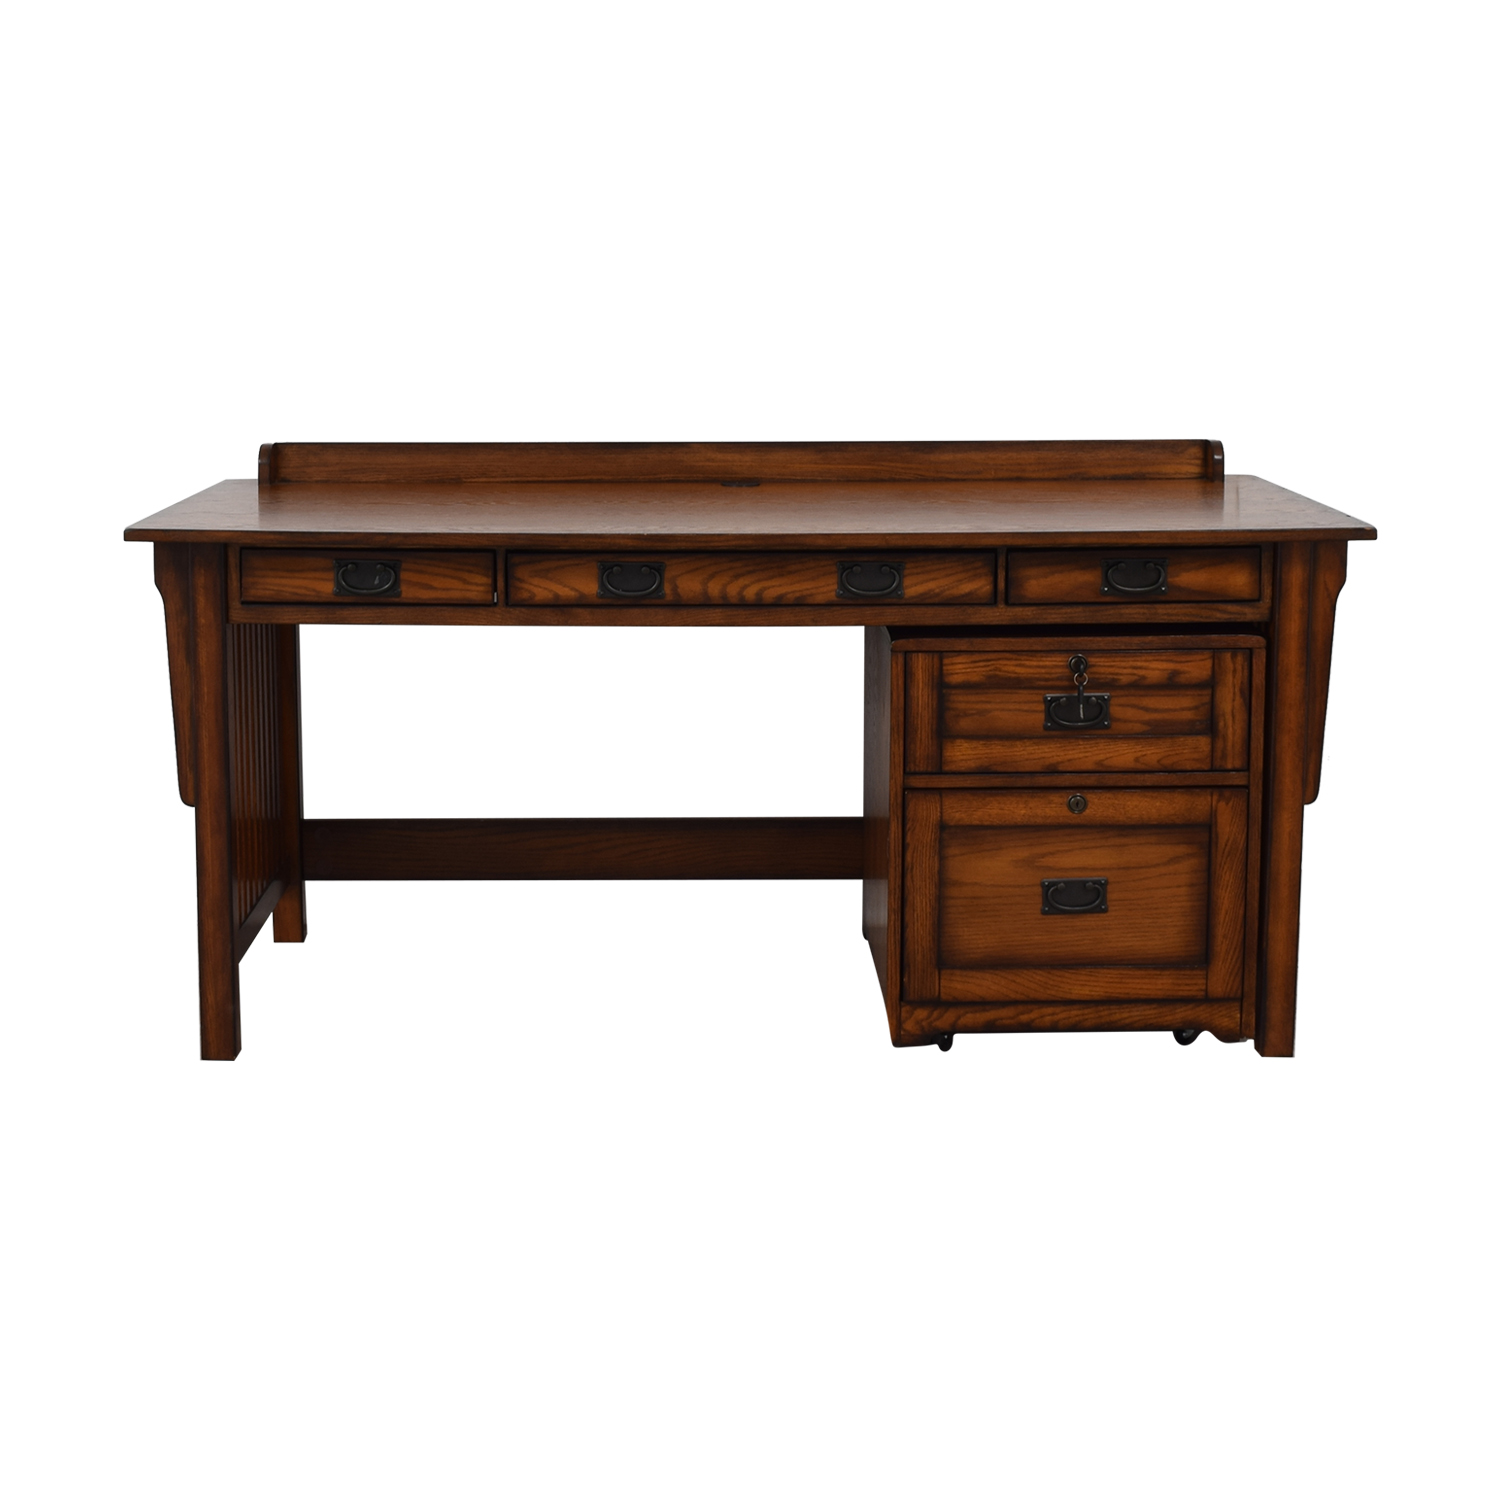 90 Off Hammary Furniture Hammary Furniture Wood Desk And File